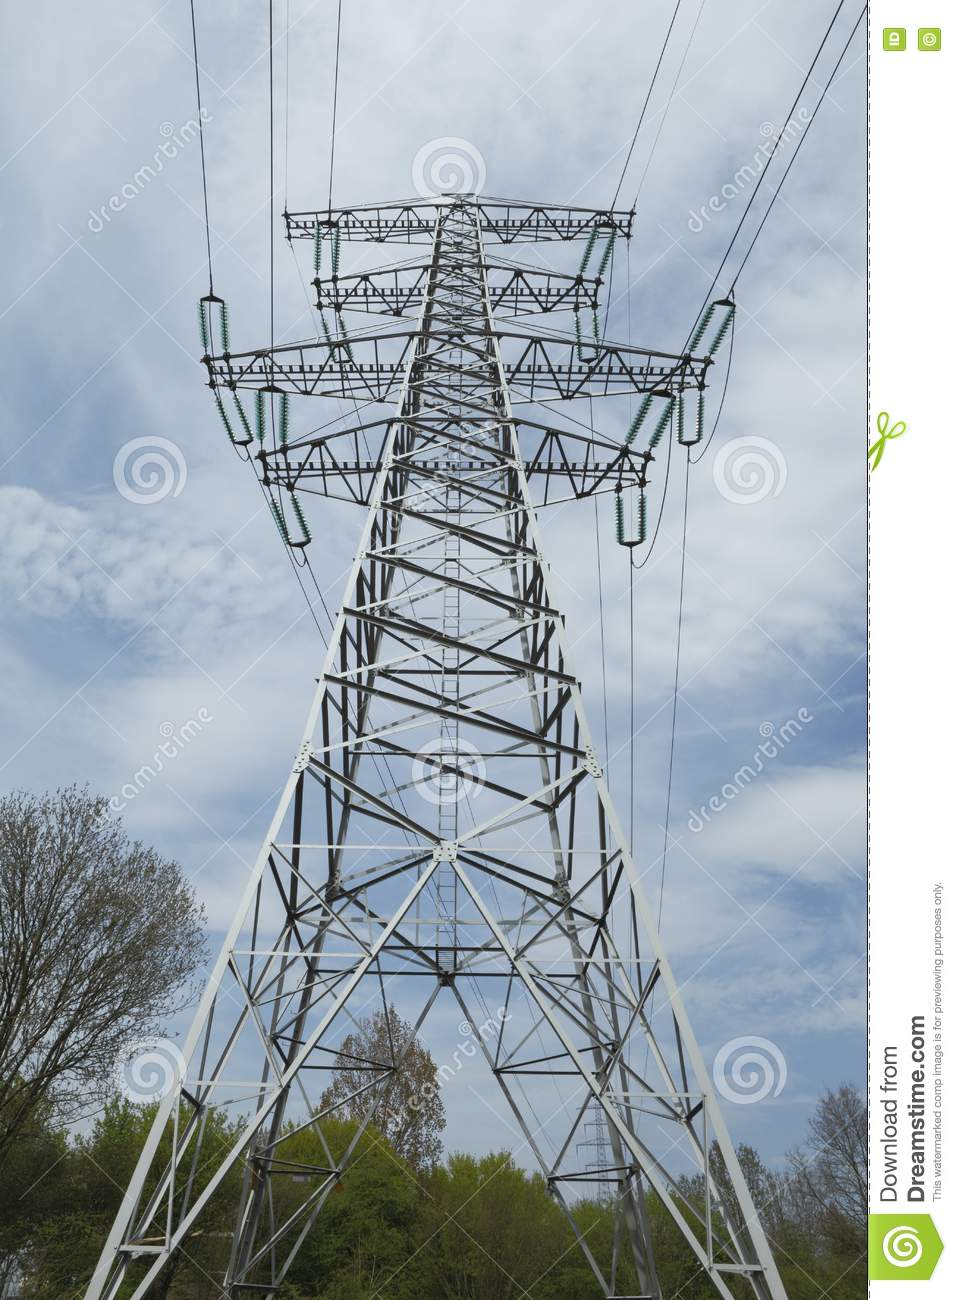 mast powerpoint poster template - power mast royalty free stock photo image 14229155